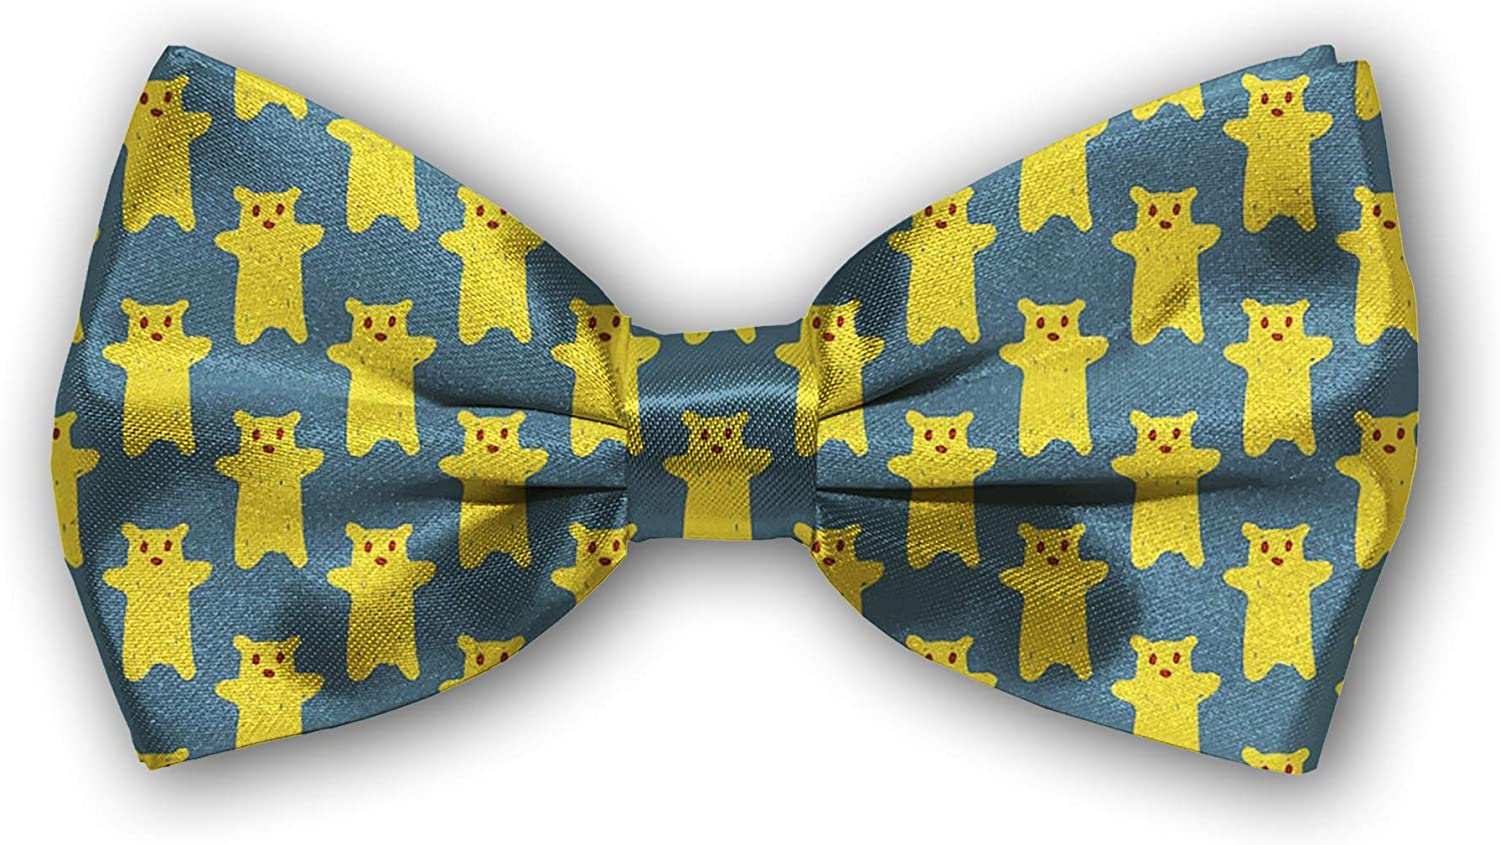 Bow Bombing free shipping Tie Tuxedo Butterfly Cotton Adjustable Max 84% OFF Bowtie Mens for Boys